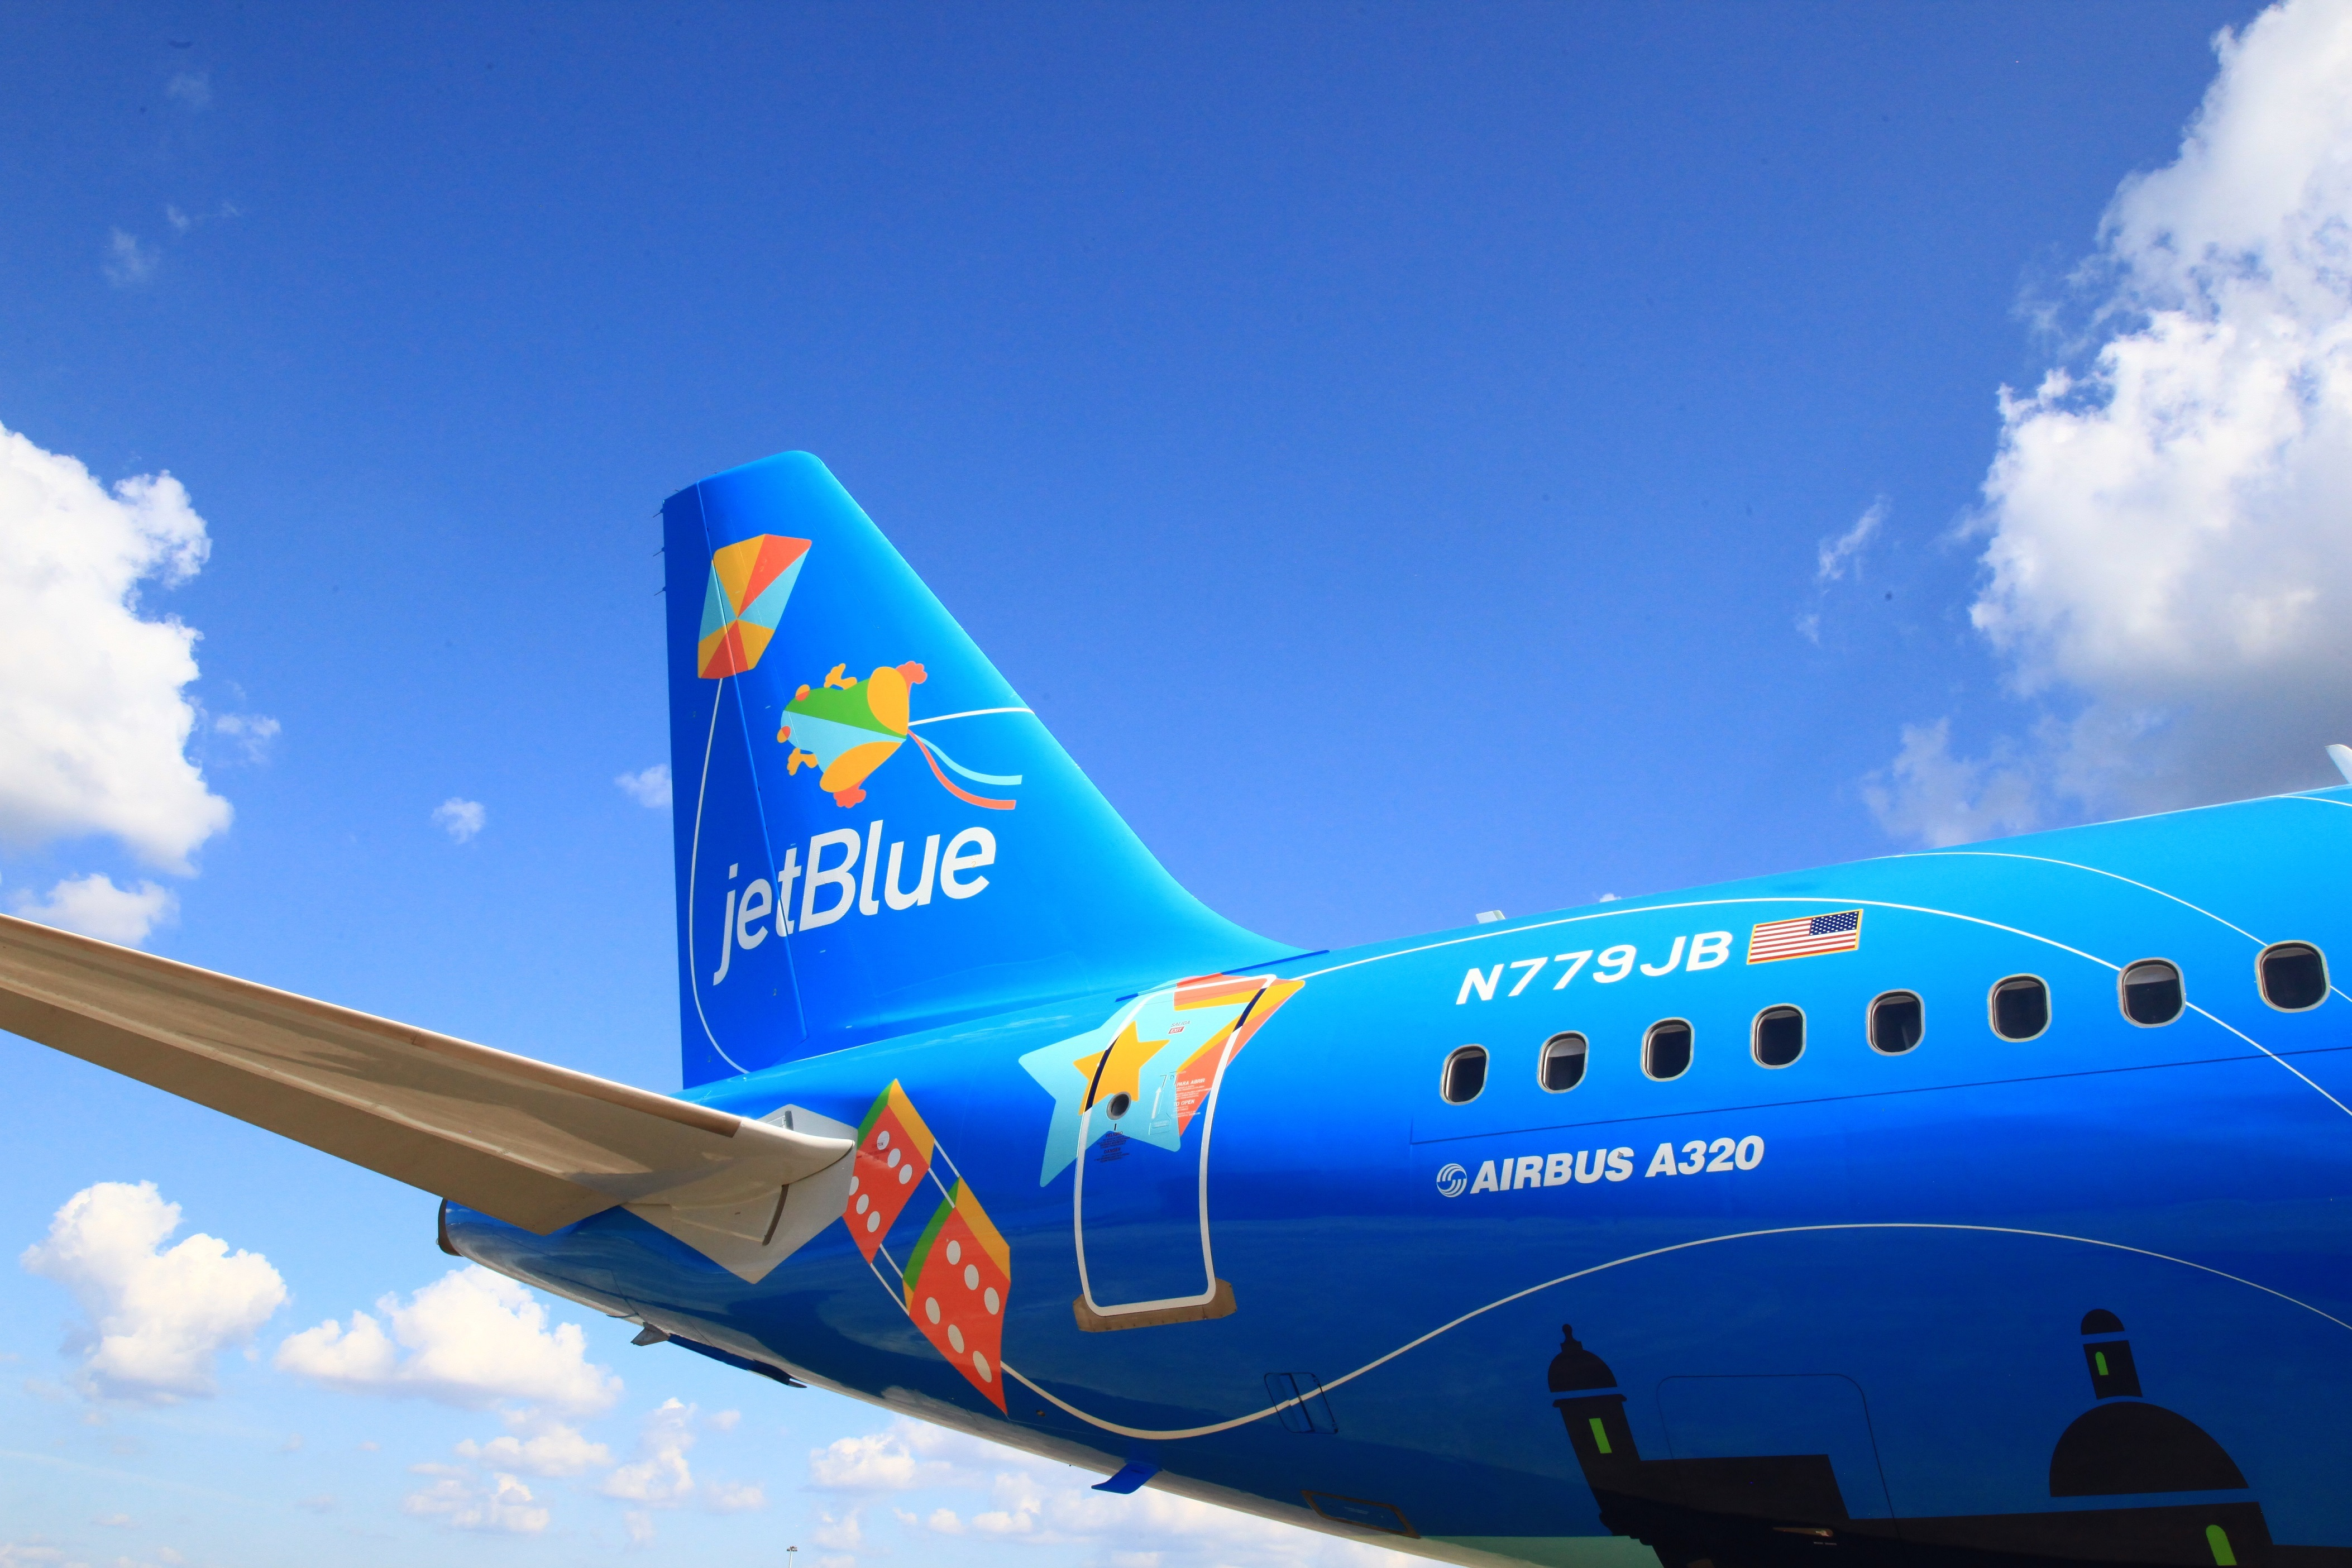 jetblue celebrates puerto rico and supports tourism to the island